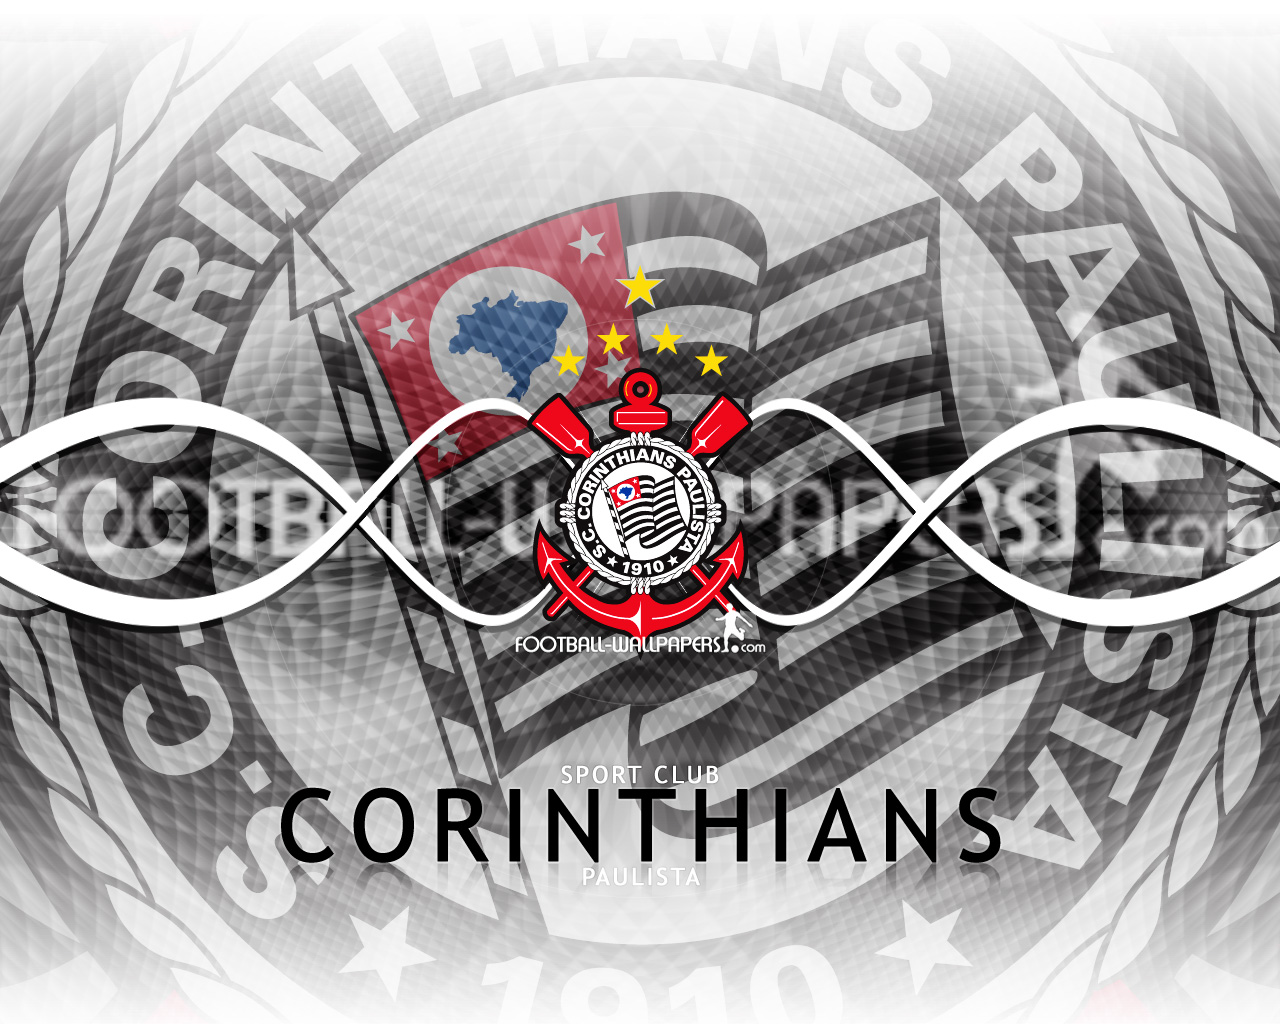 Corinthians Foto ~ BLOG DO HUGO FREITAS AMOR NO DNA CORINTHIANS, O MELHOR TIME DO MUNDO!!!